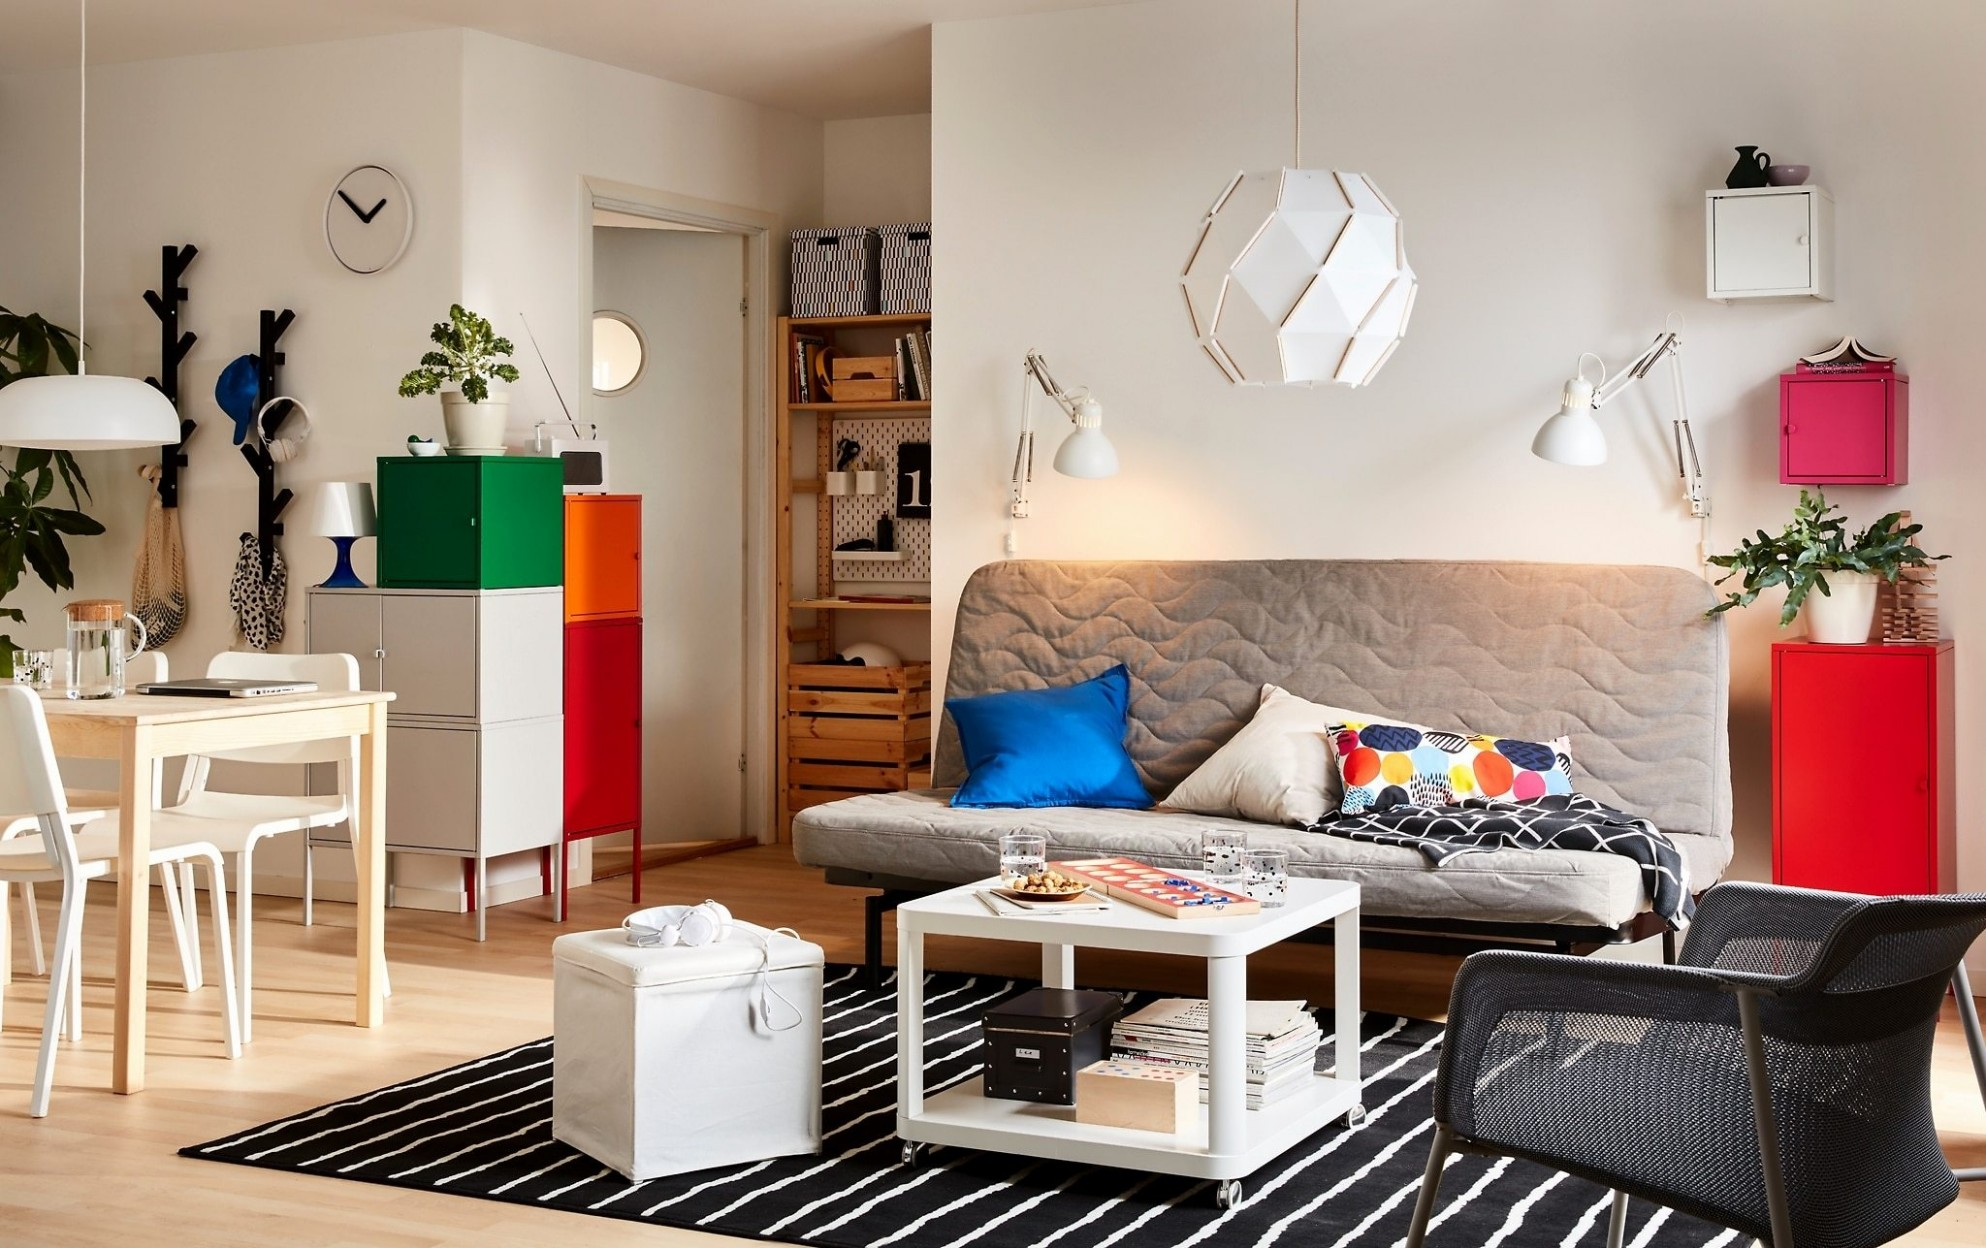 Small Living Room Layout Ideas from IKEA  Apartment Therapy - Small Apartment Decorating Ideas Ikea